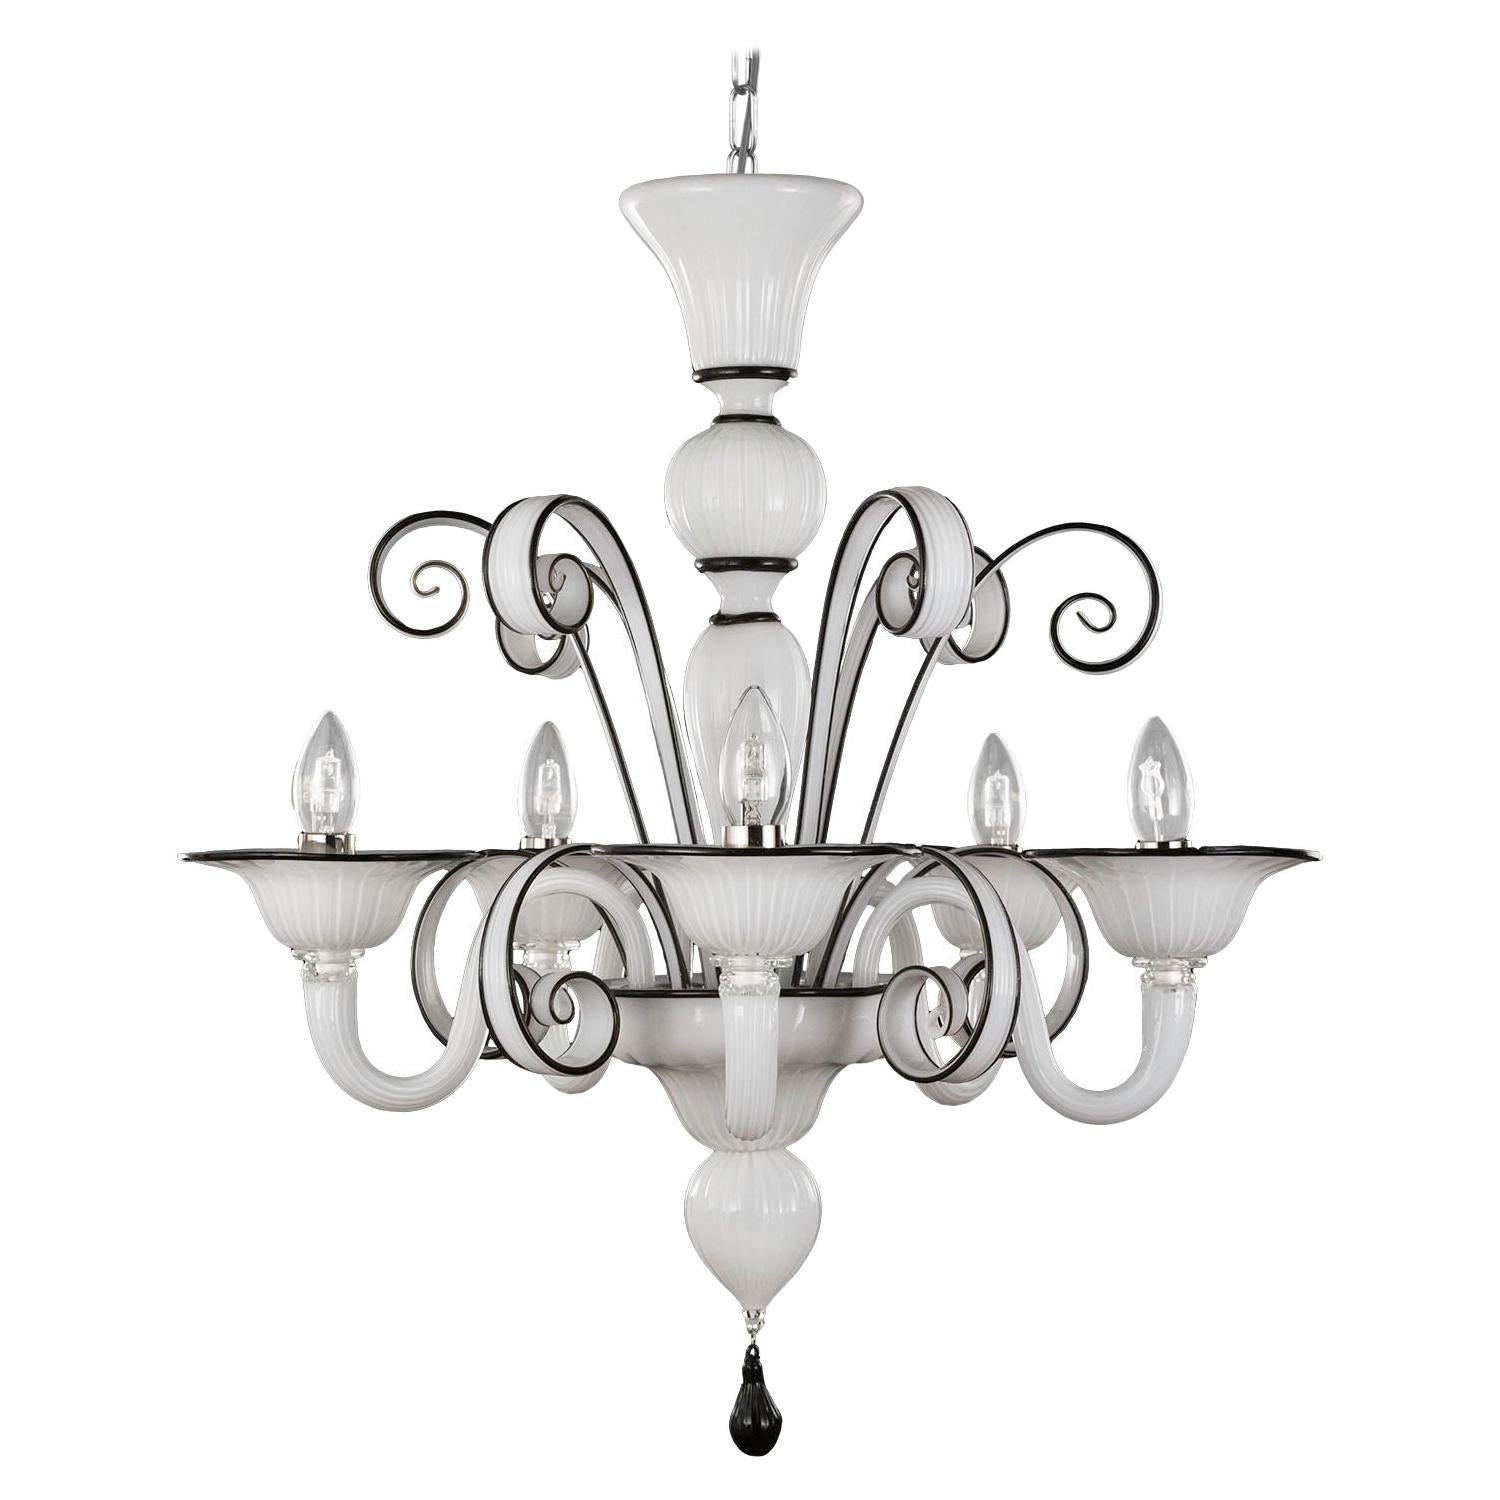 Chandelier 5 Arms White Blown Artistic Murano Glass, Black Details by Multiforme